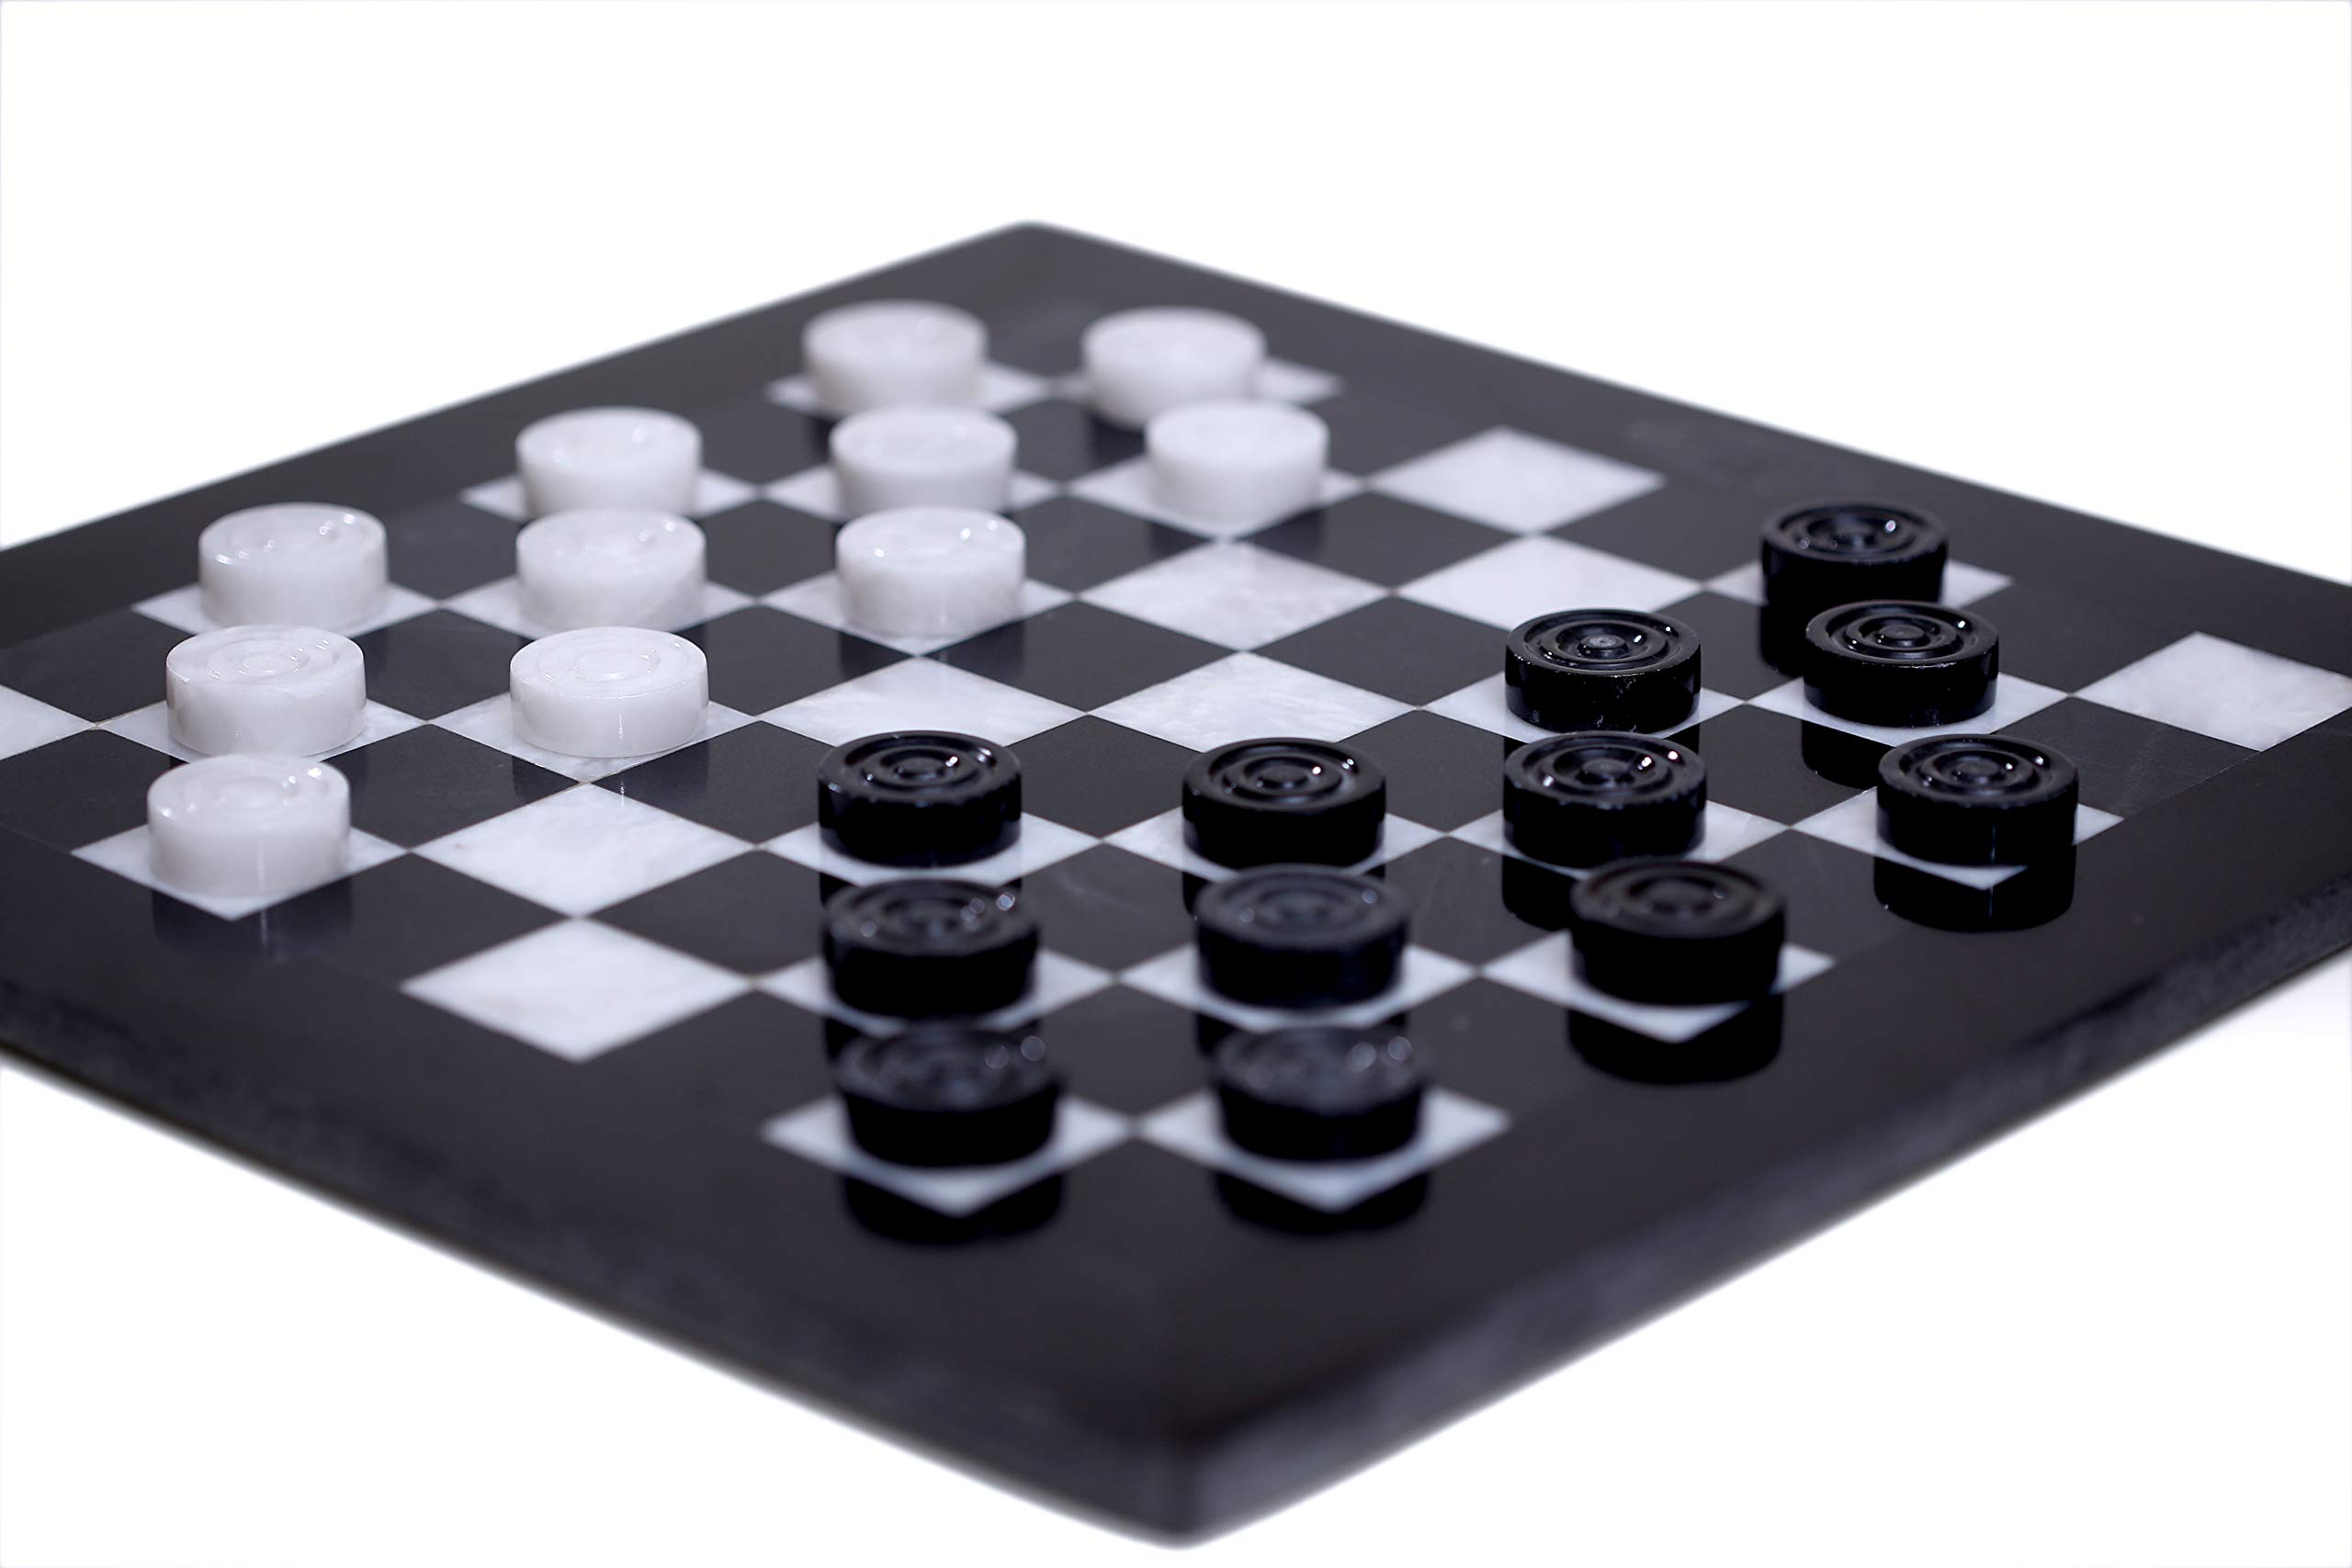 RADICALn Checkers Board Game 16 Inches Black and White Handmade Marble Coffee Time 2 Player Tournament Checker Set - Non Wooden Non Cribbage Non Chess - Portable Table Draughts Kids Board Games Sets